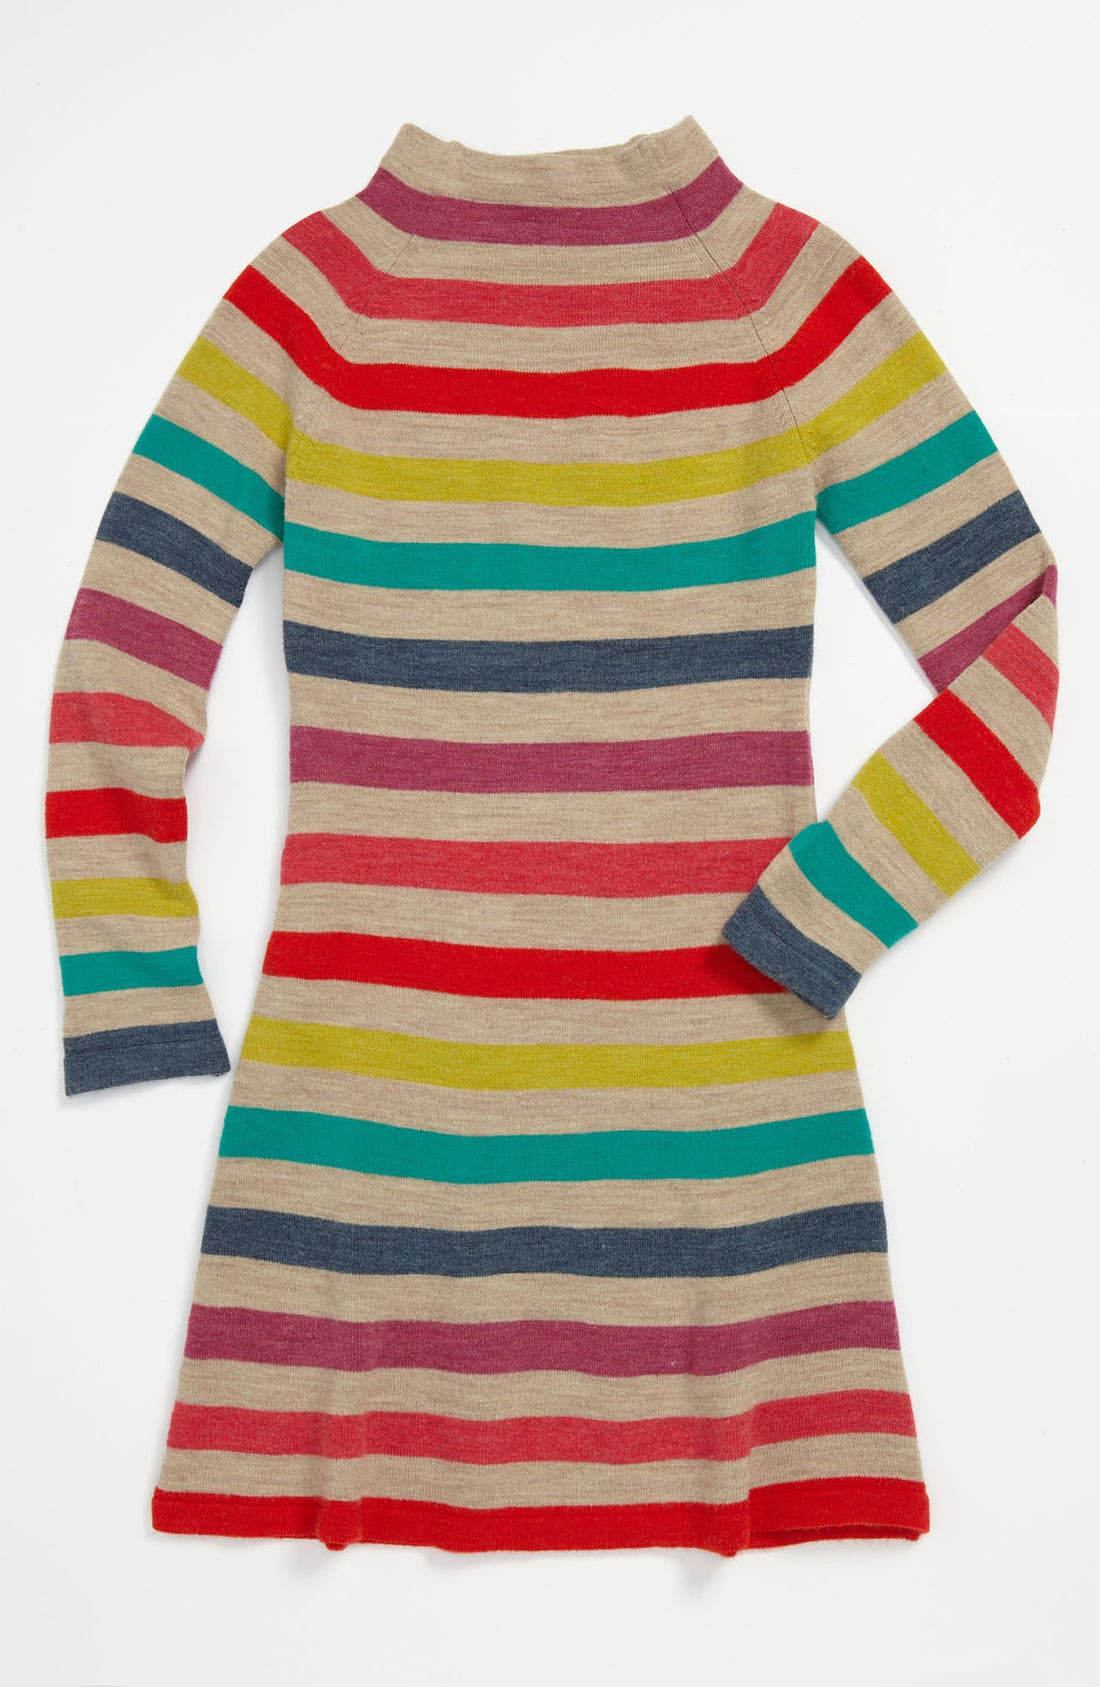 Alternate Image 1 Selected - United Colors of Benetton Kids Stripe Sweater Dress (Little Girls & Big Girls)